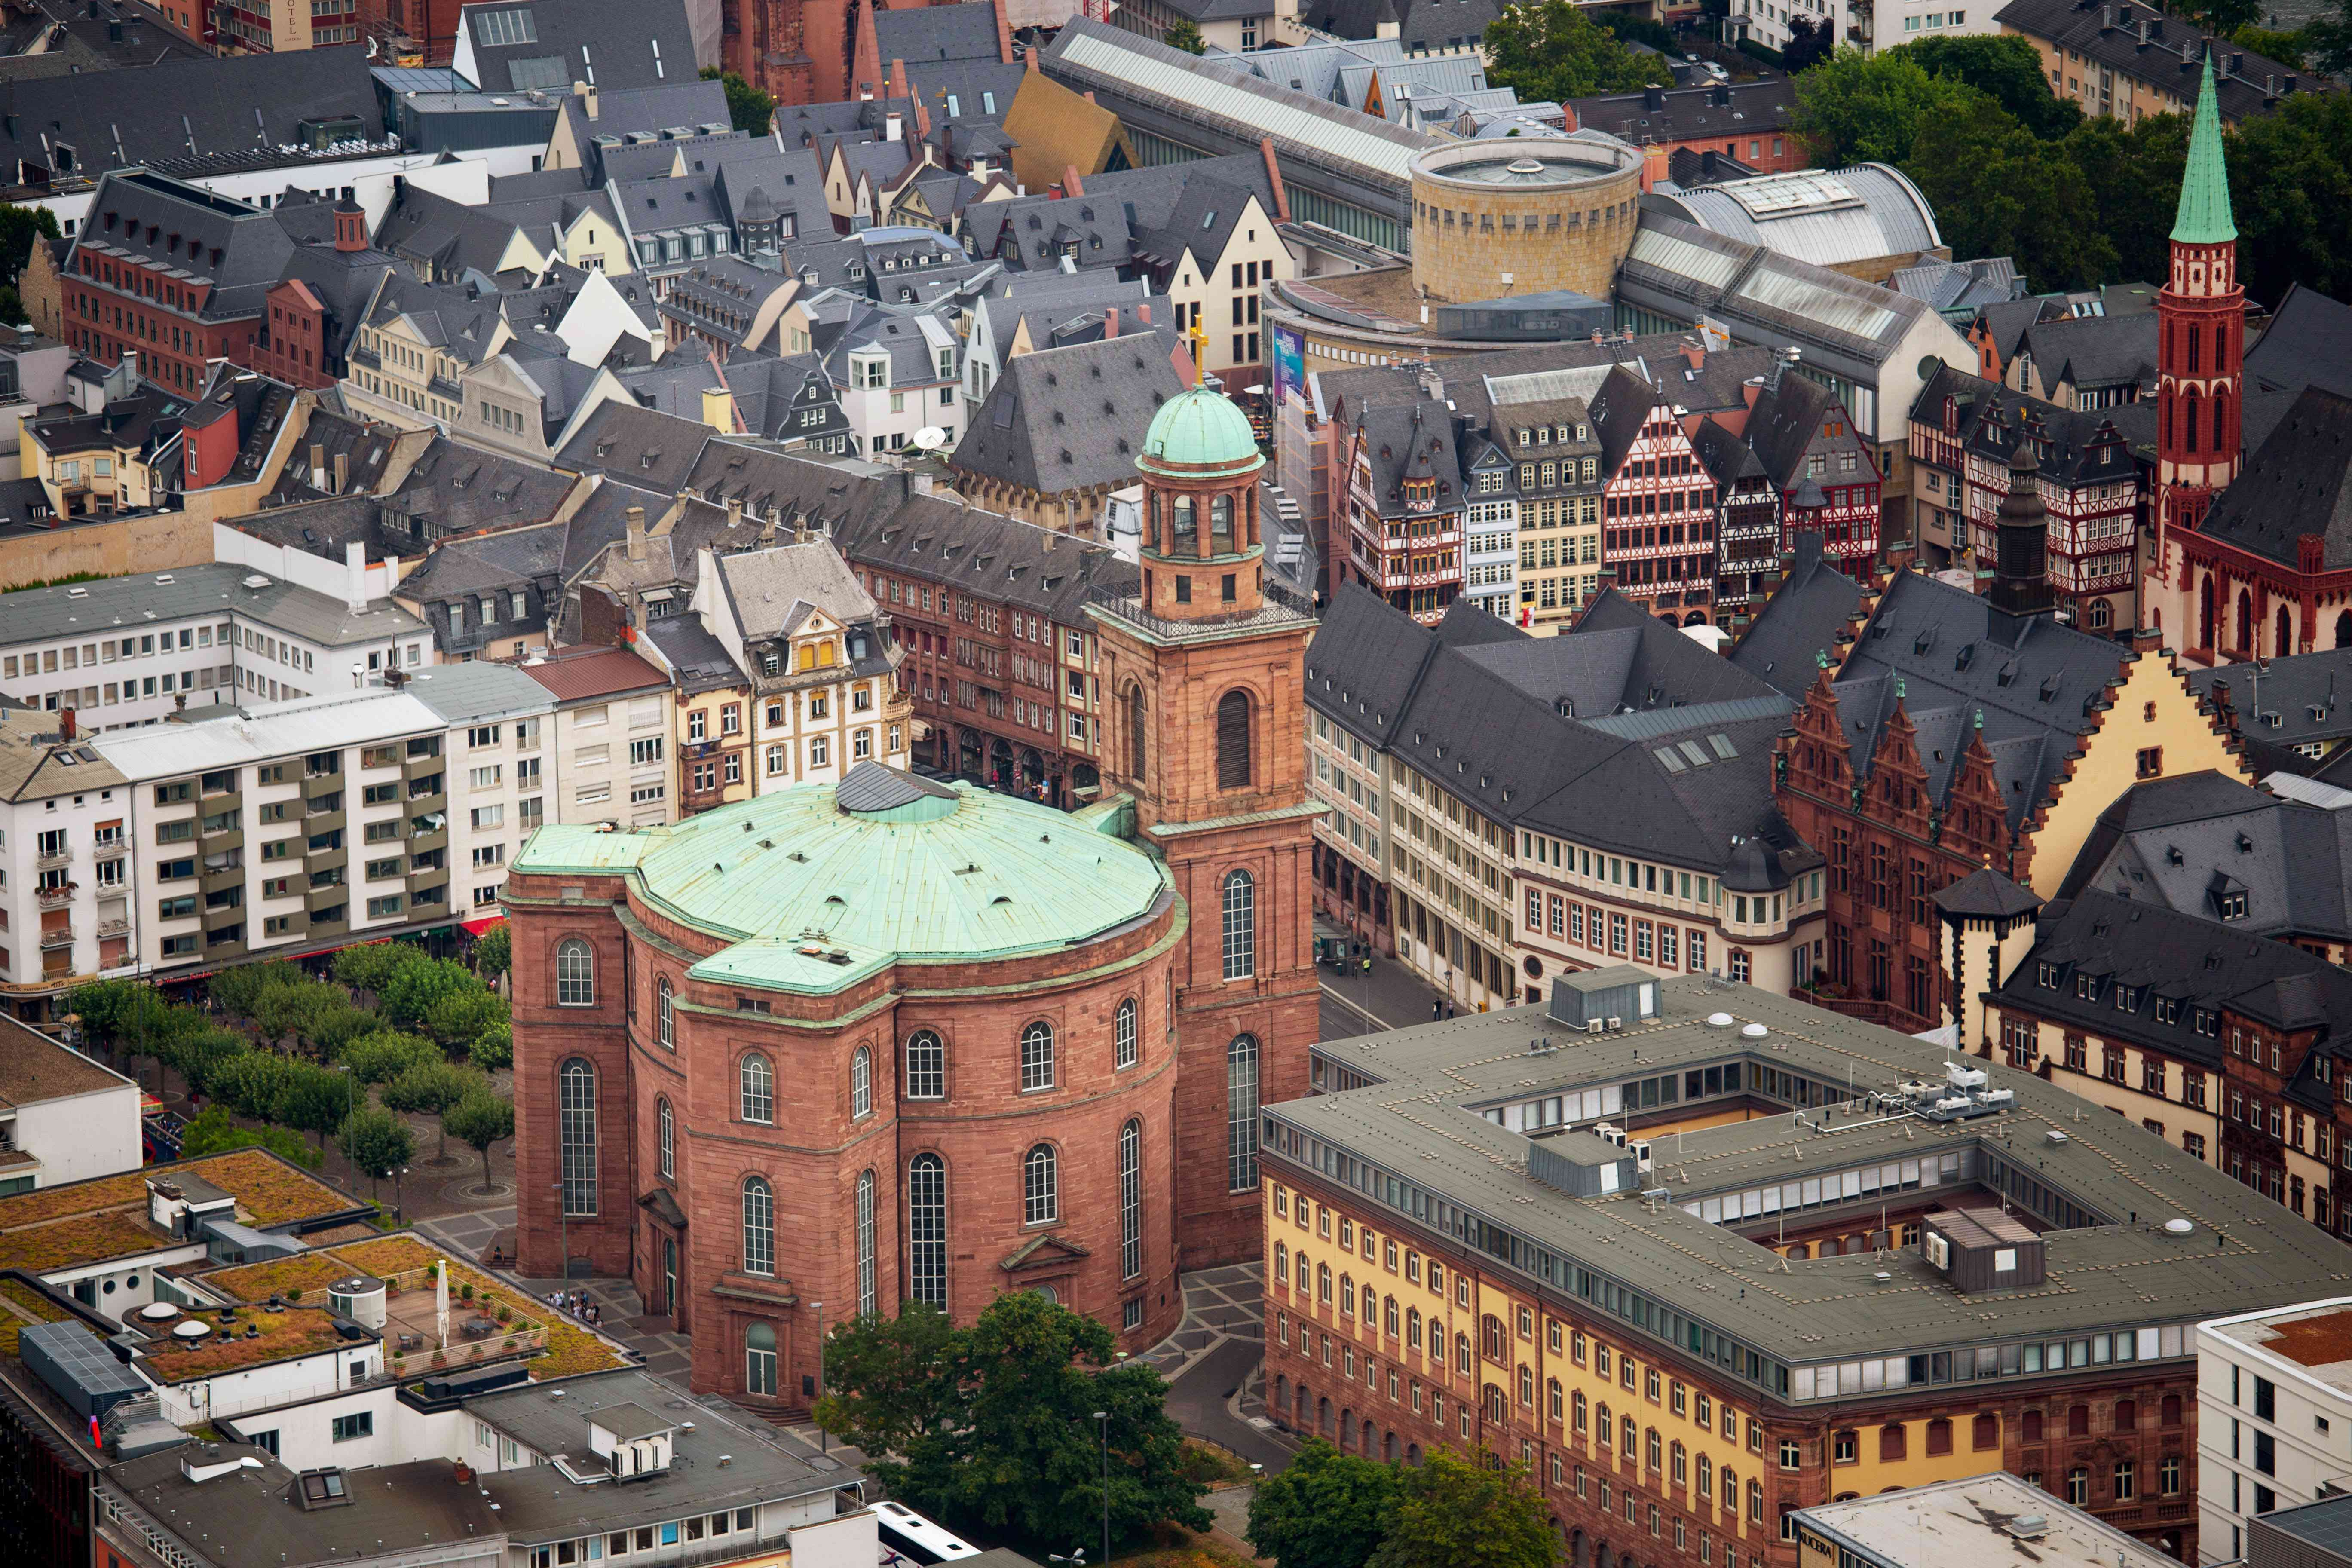 Aerial view of Church of St Paul